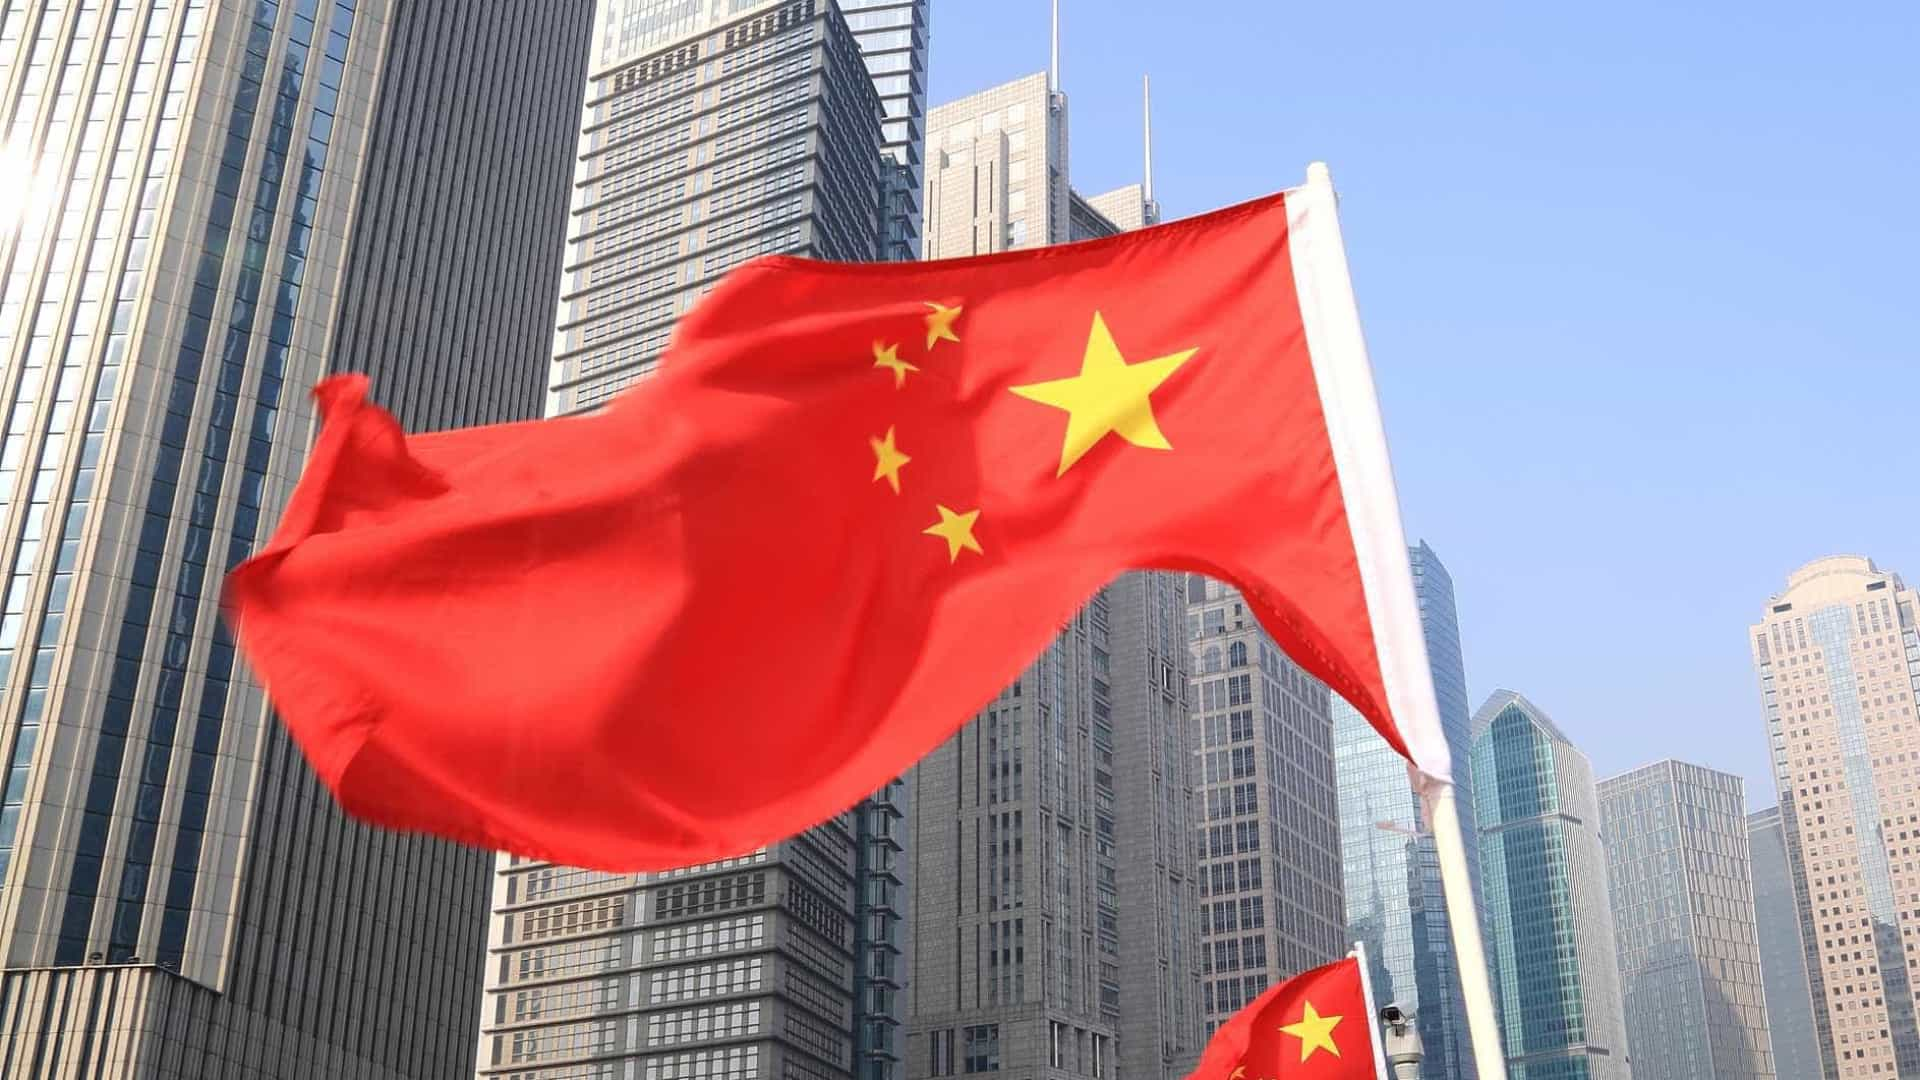 EUA pressionam China sobre disputas territoriais e Coreia do Norte